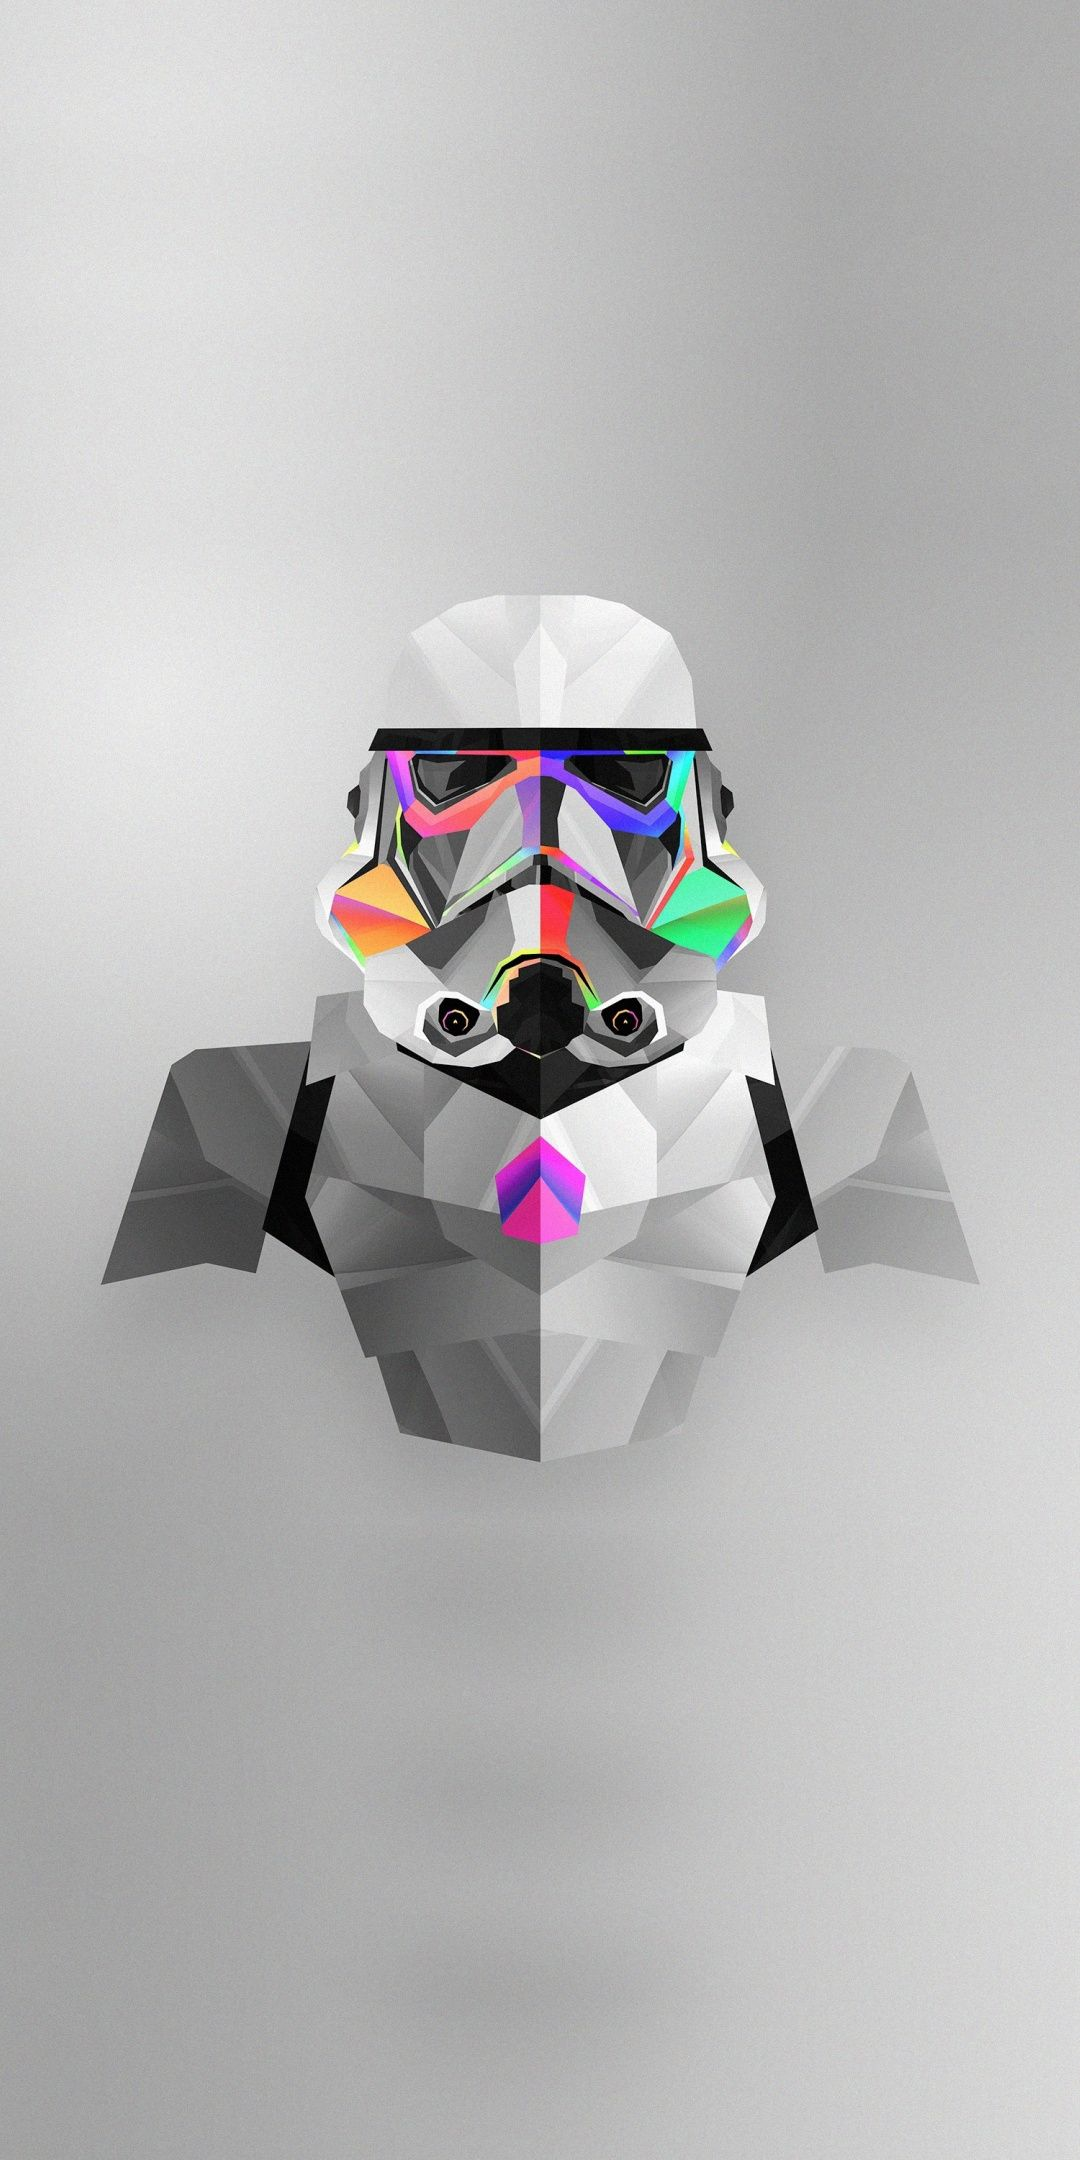 Stormtrooper Abstract Star Wars Colorful Minimal Art 1080x2160 Wallpaper Star Wars Wallpaper Star Wars Art Star Wars Trooper